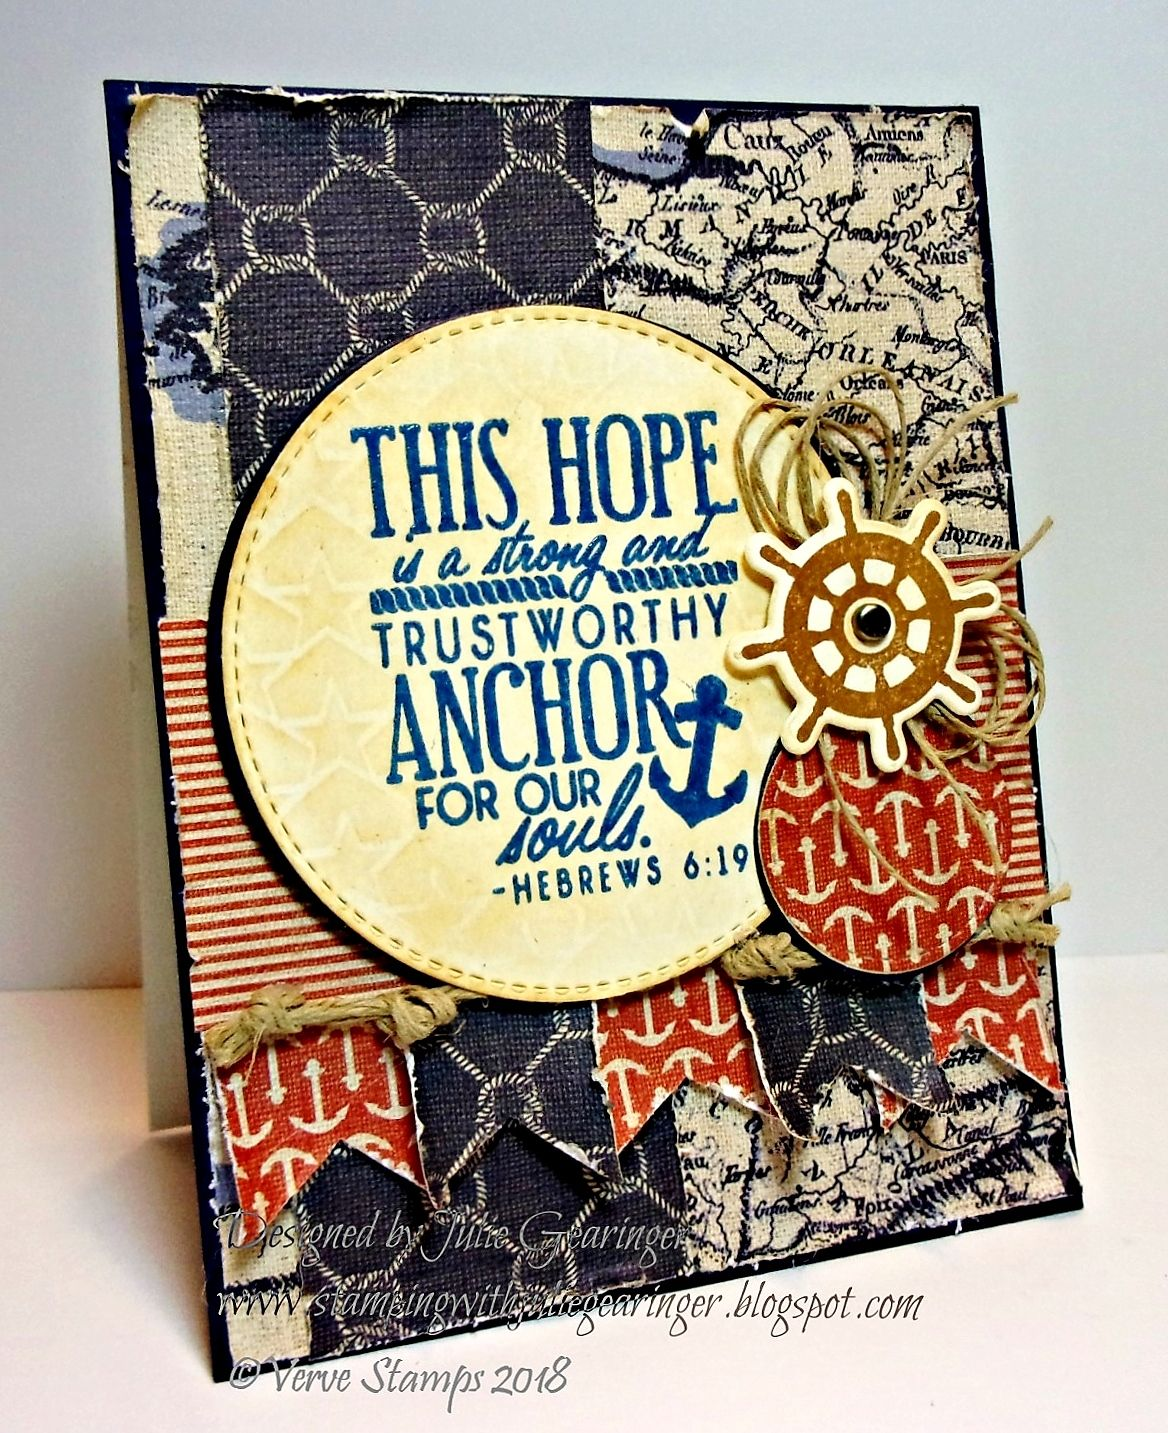 Trustworthy Anchor for Our Souls Verve stamps, Cards